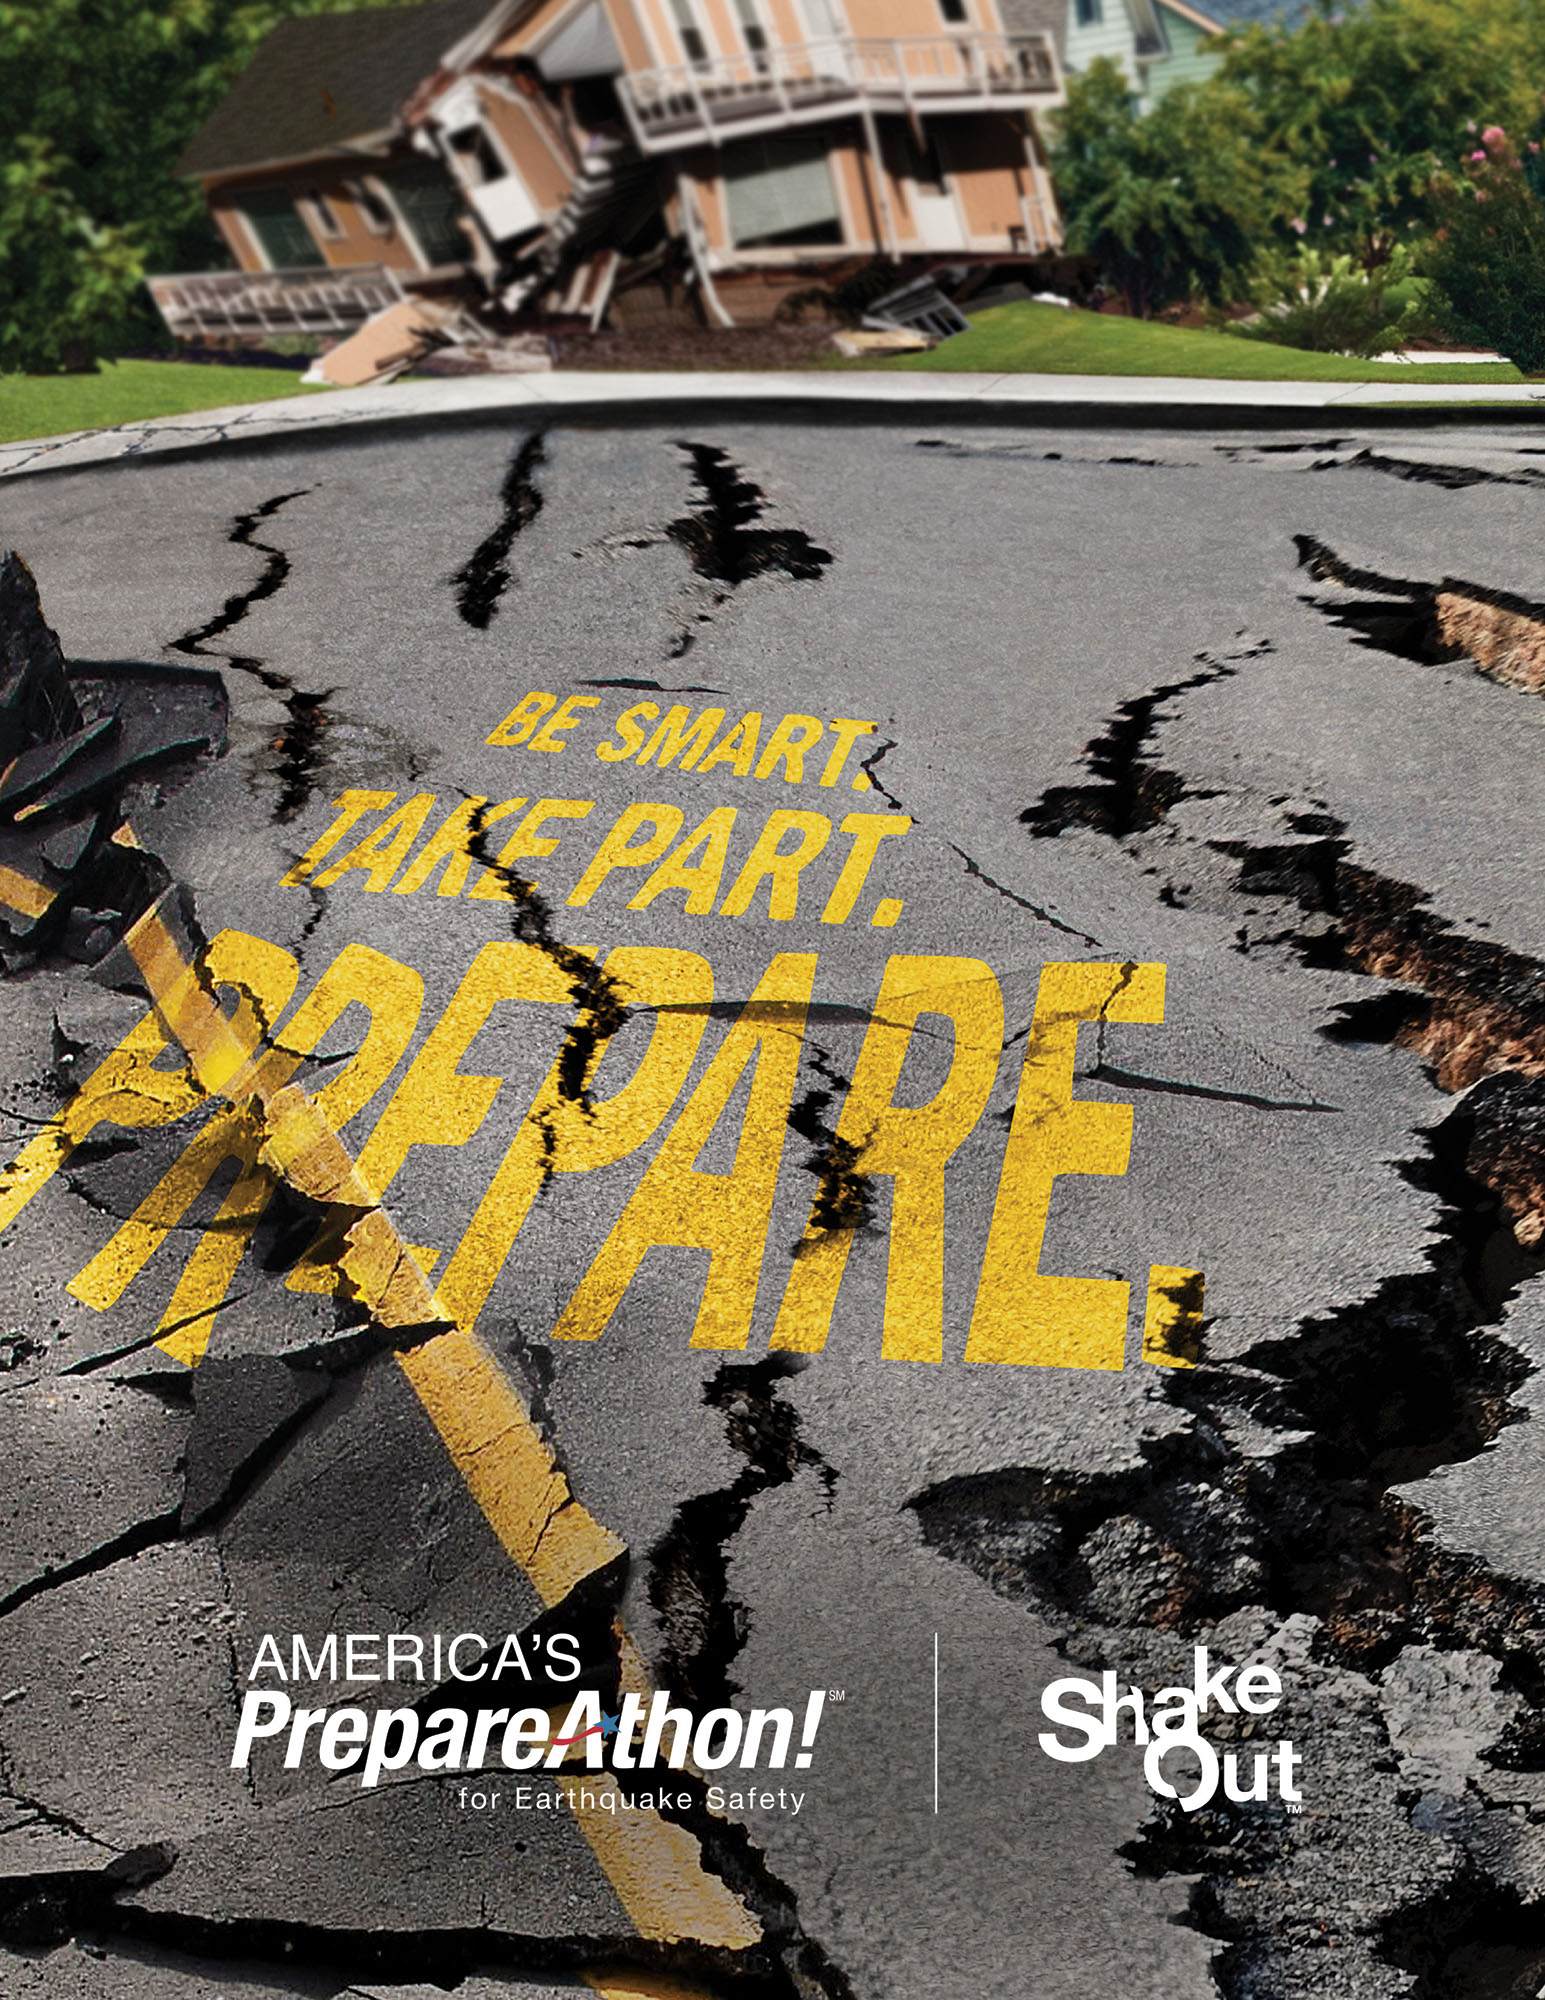 America's PrepareAthon! for Earthquake Safety